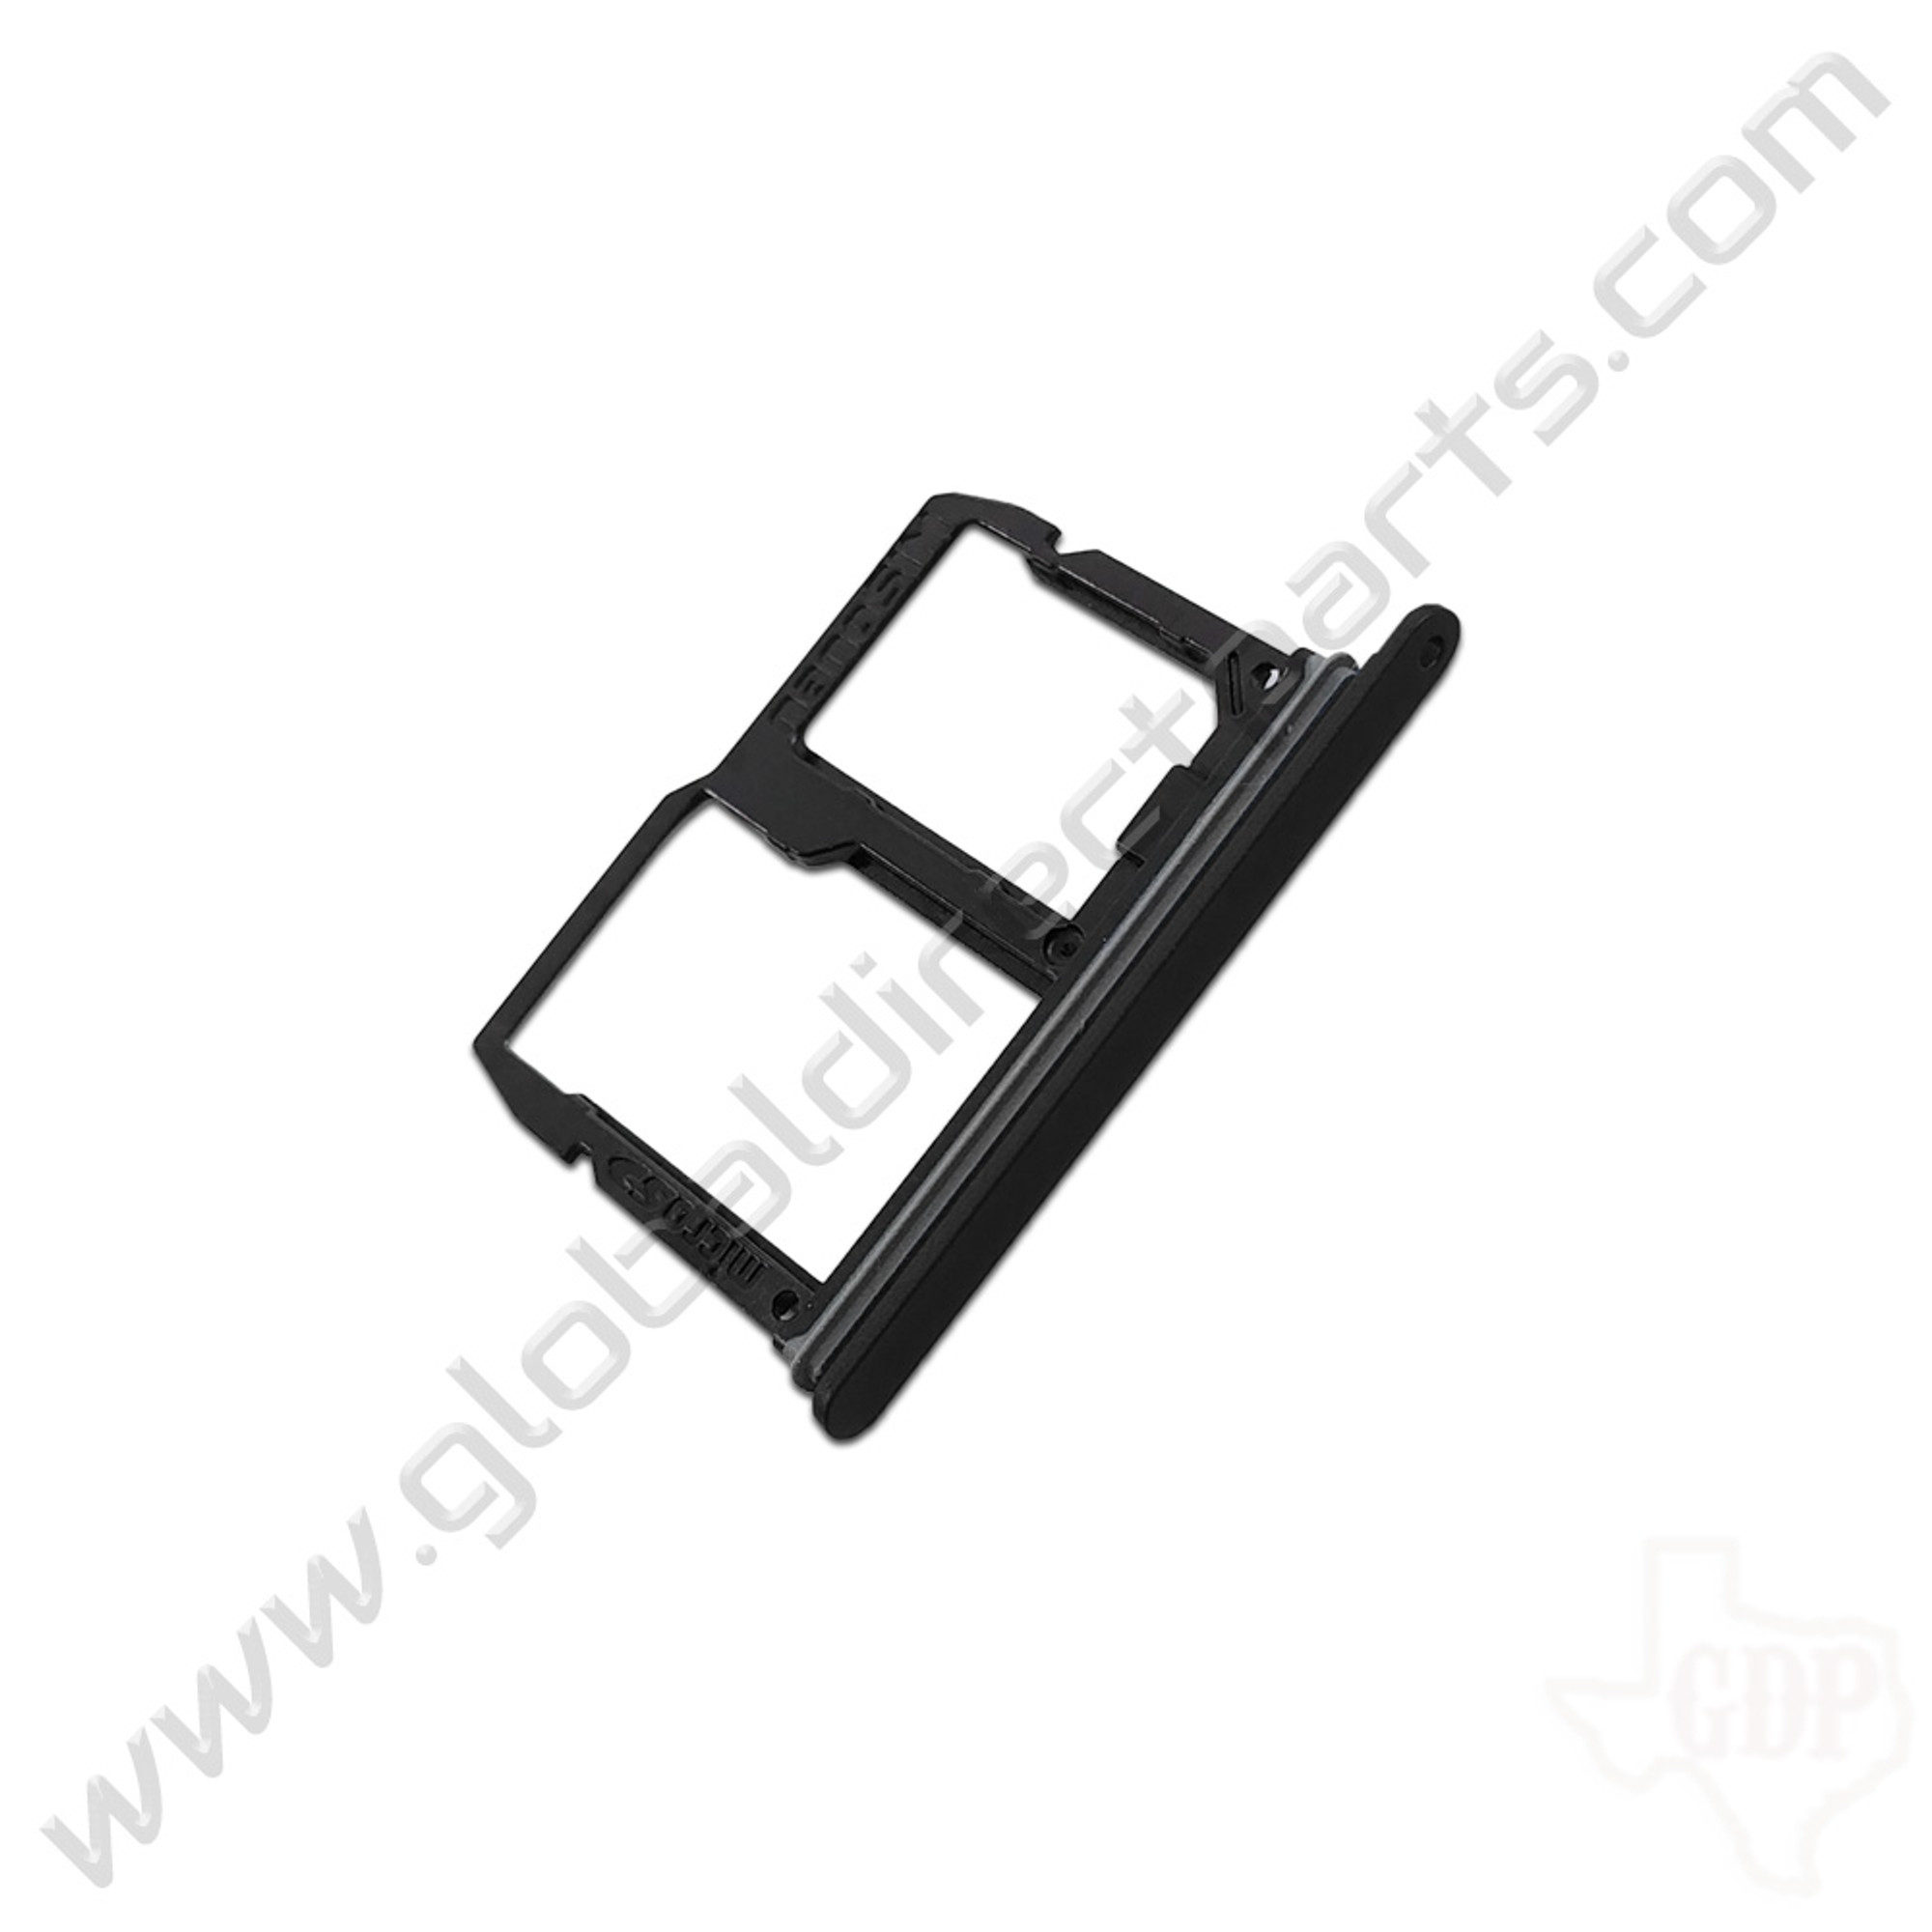 OEM LG Stylo 4, Q7+ SIM & SD Card Tray - Black